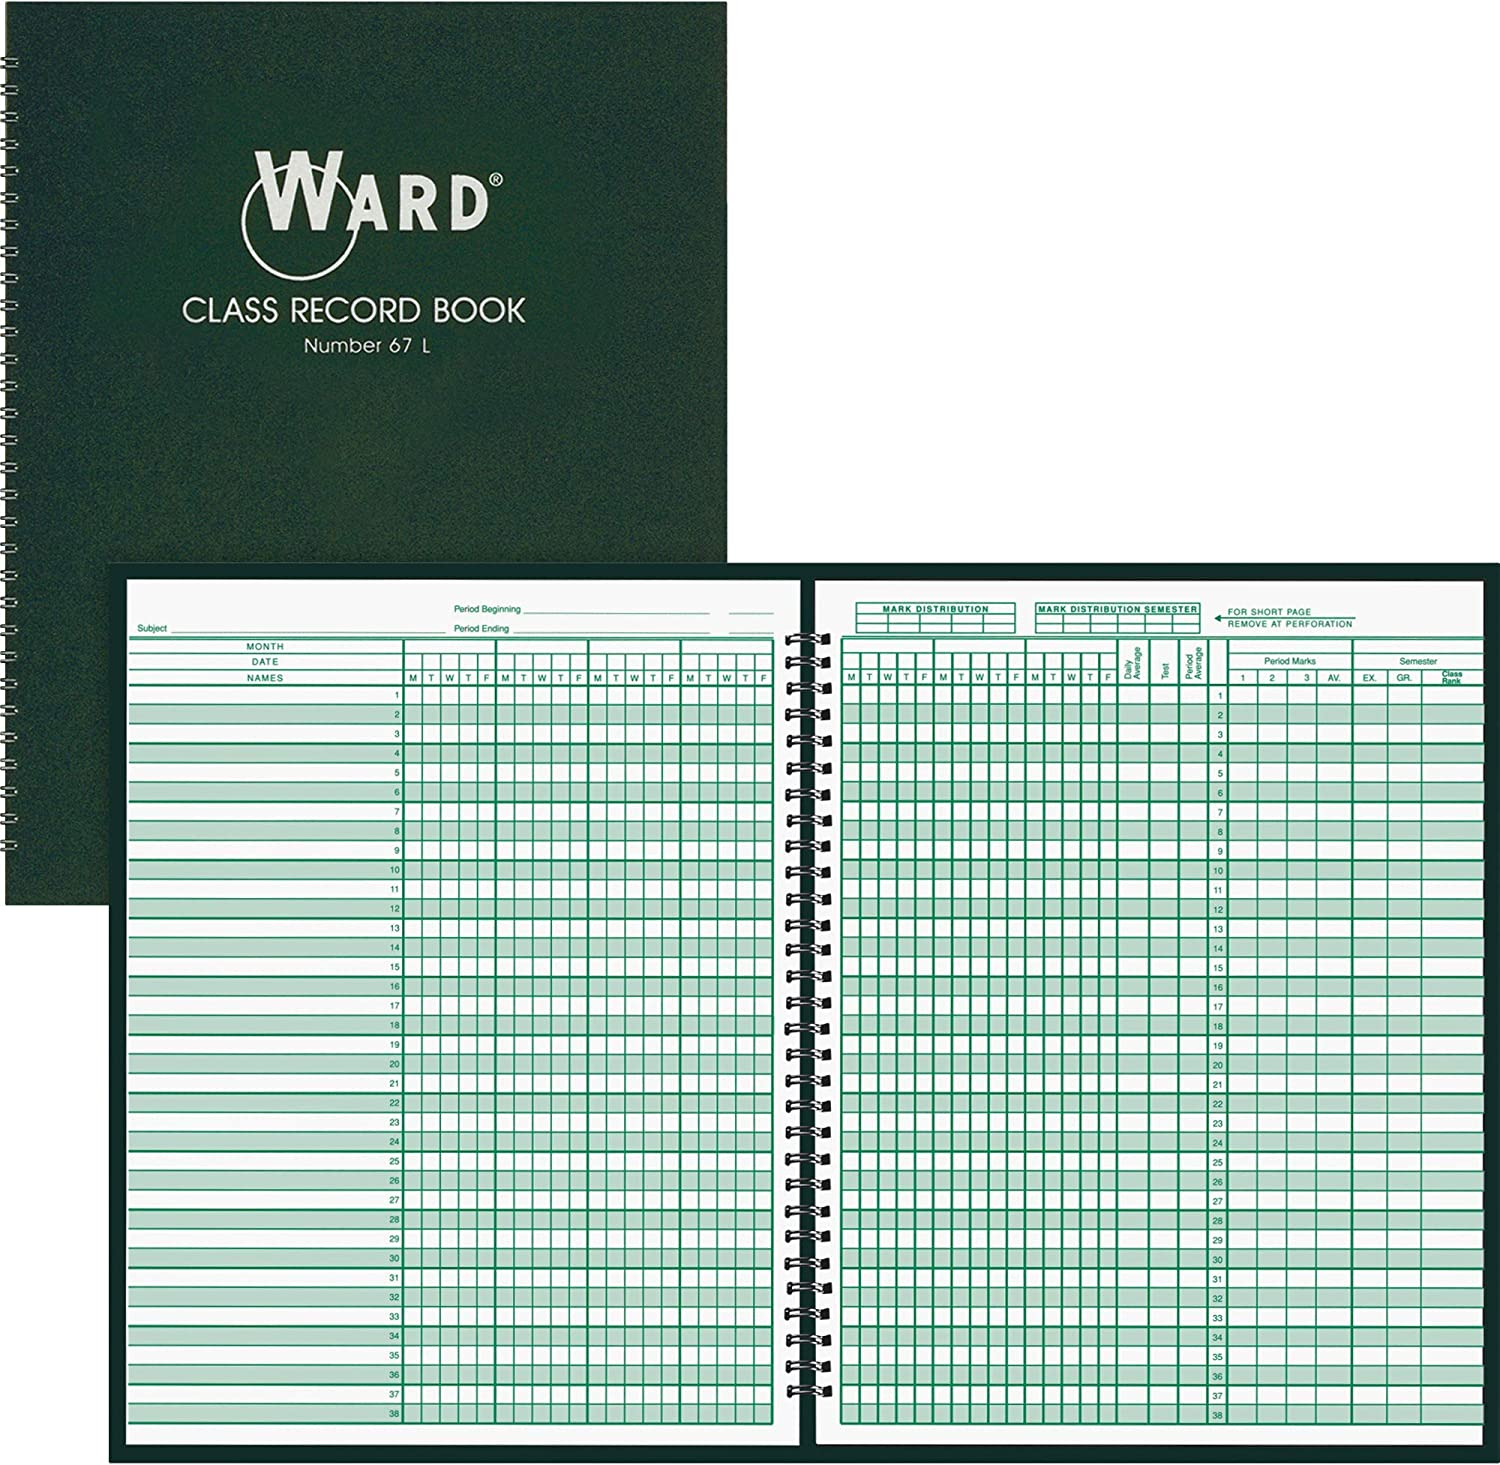 Ward Class New York Mall Record Arlington Mall Book White. of 4 Pack